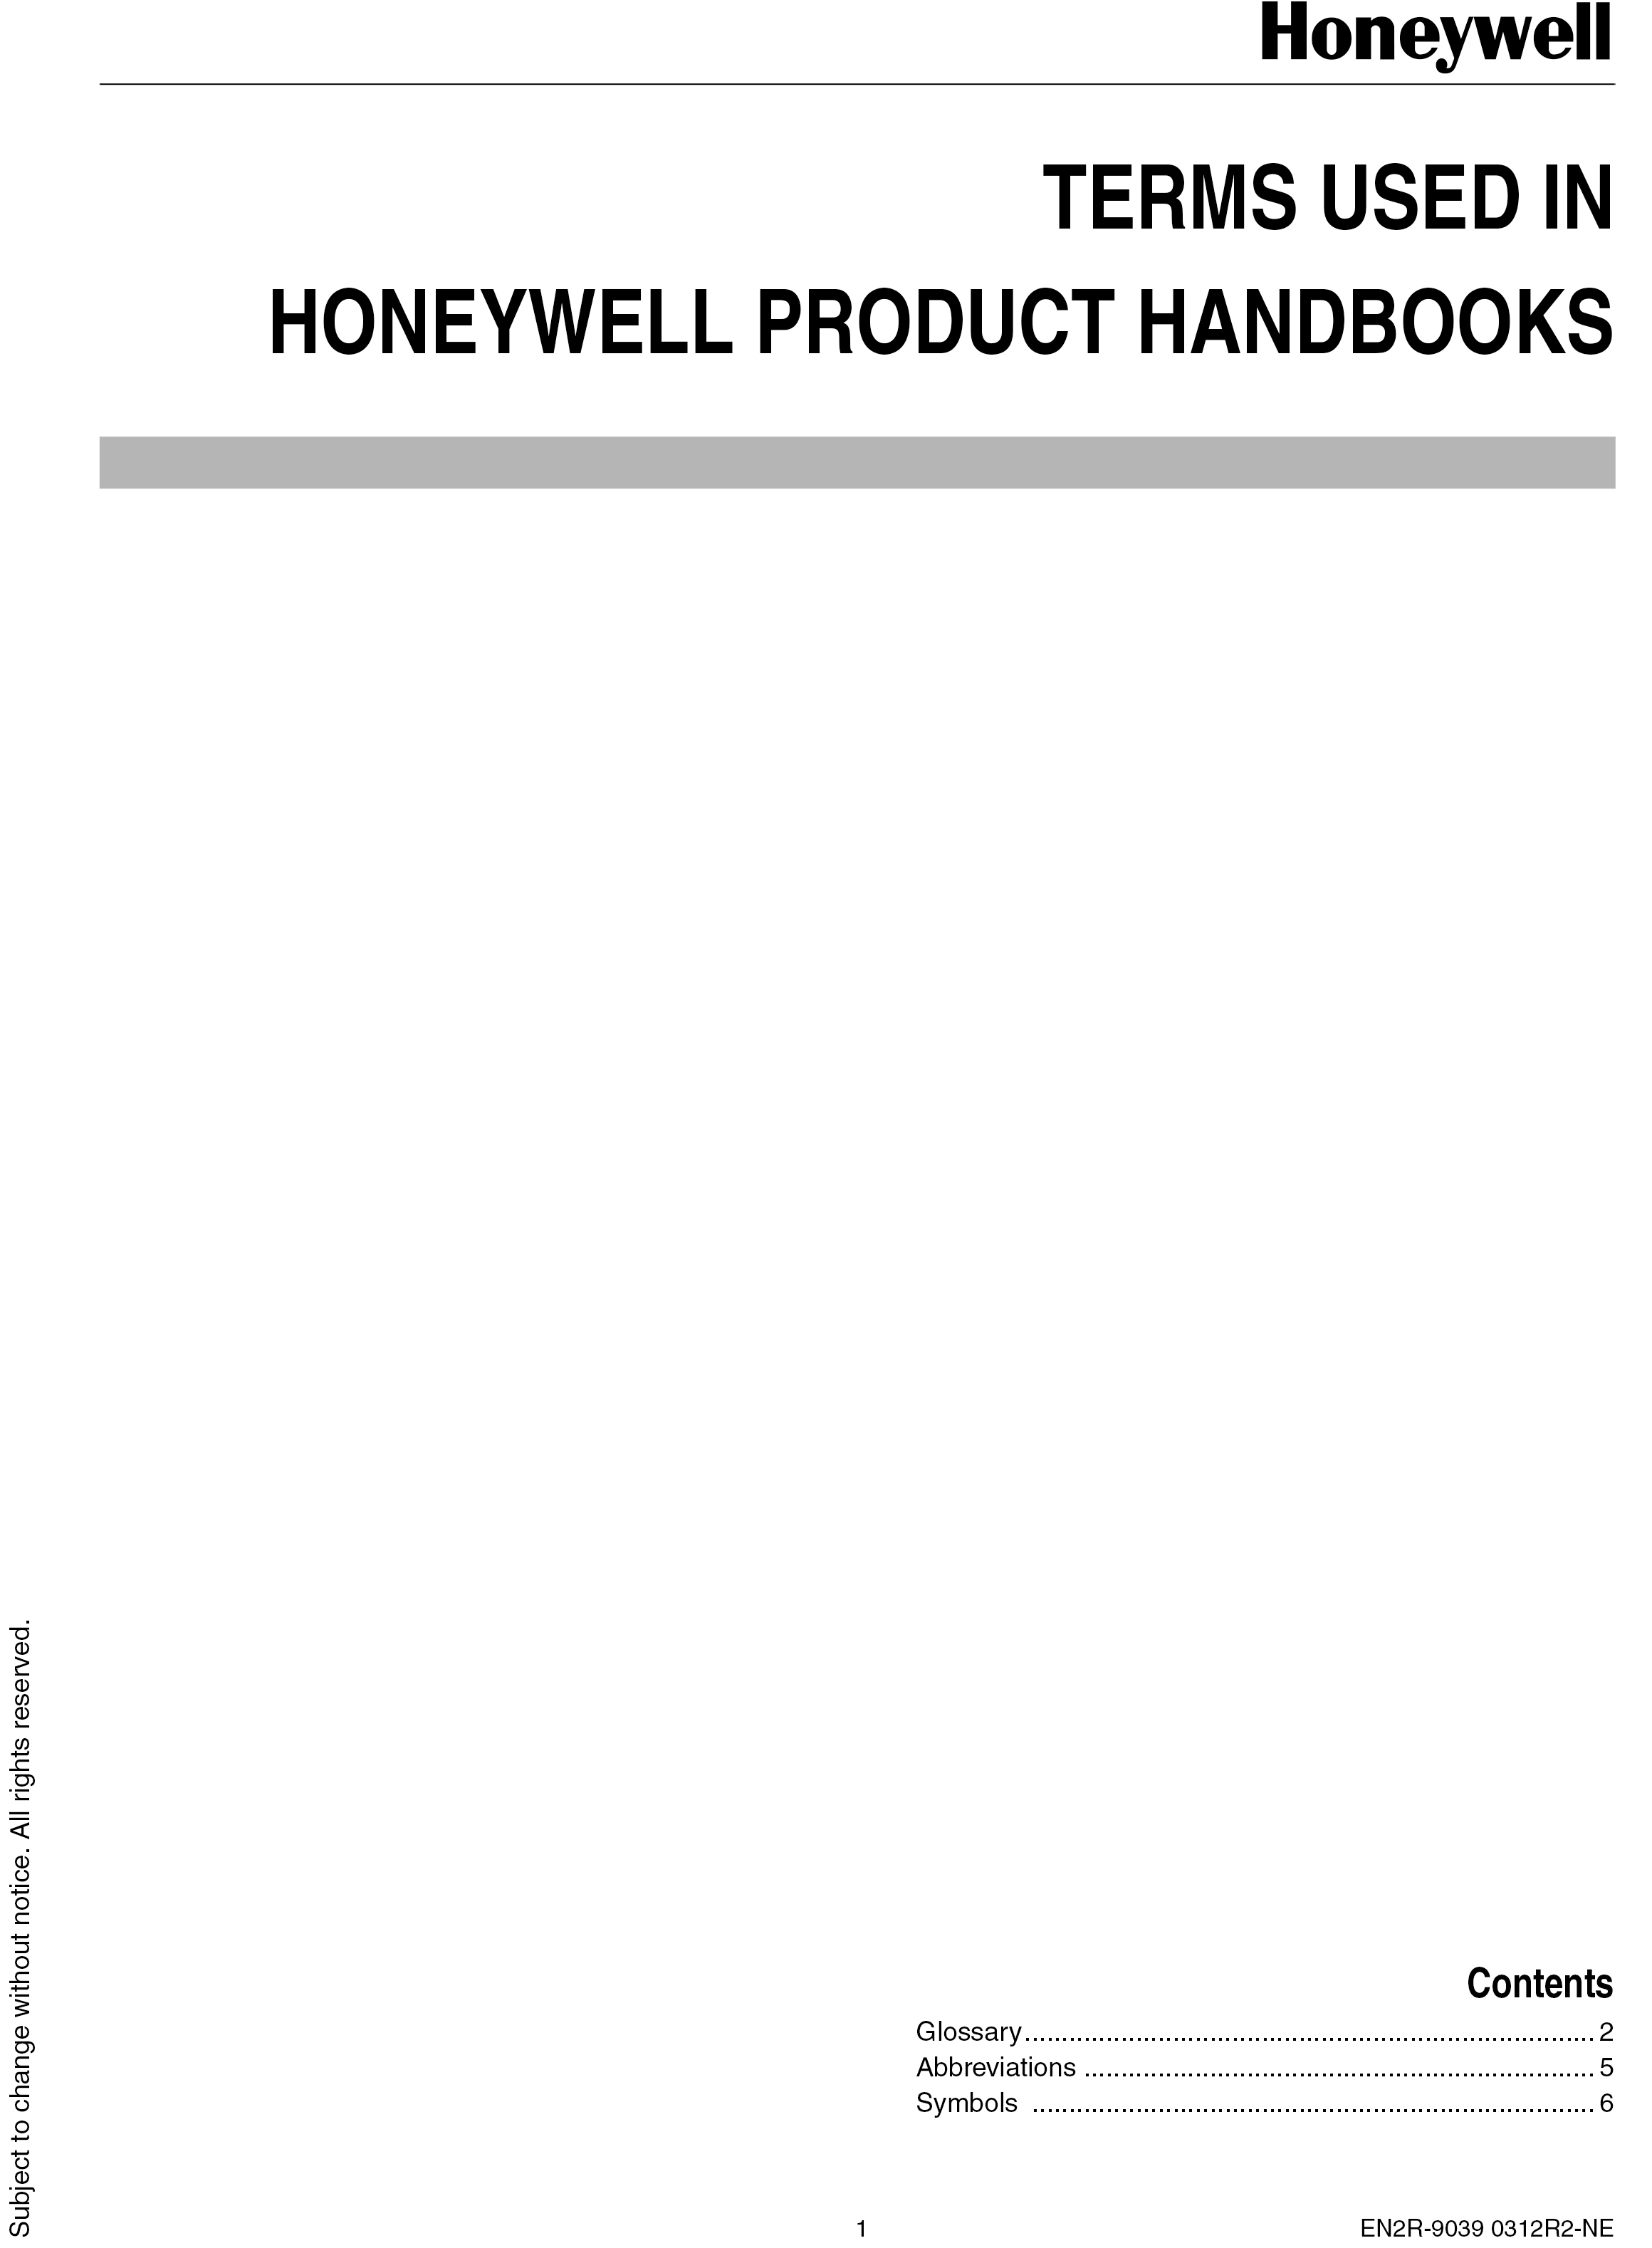 TERMS USED IN HONEYWELL PRODUCT HANDBOOKS